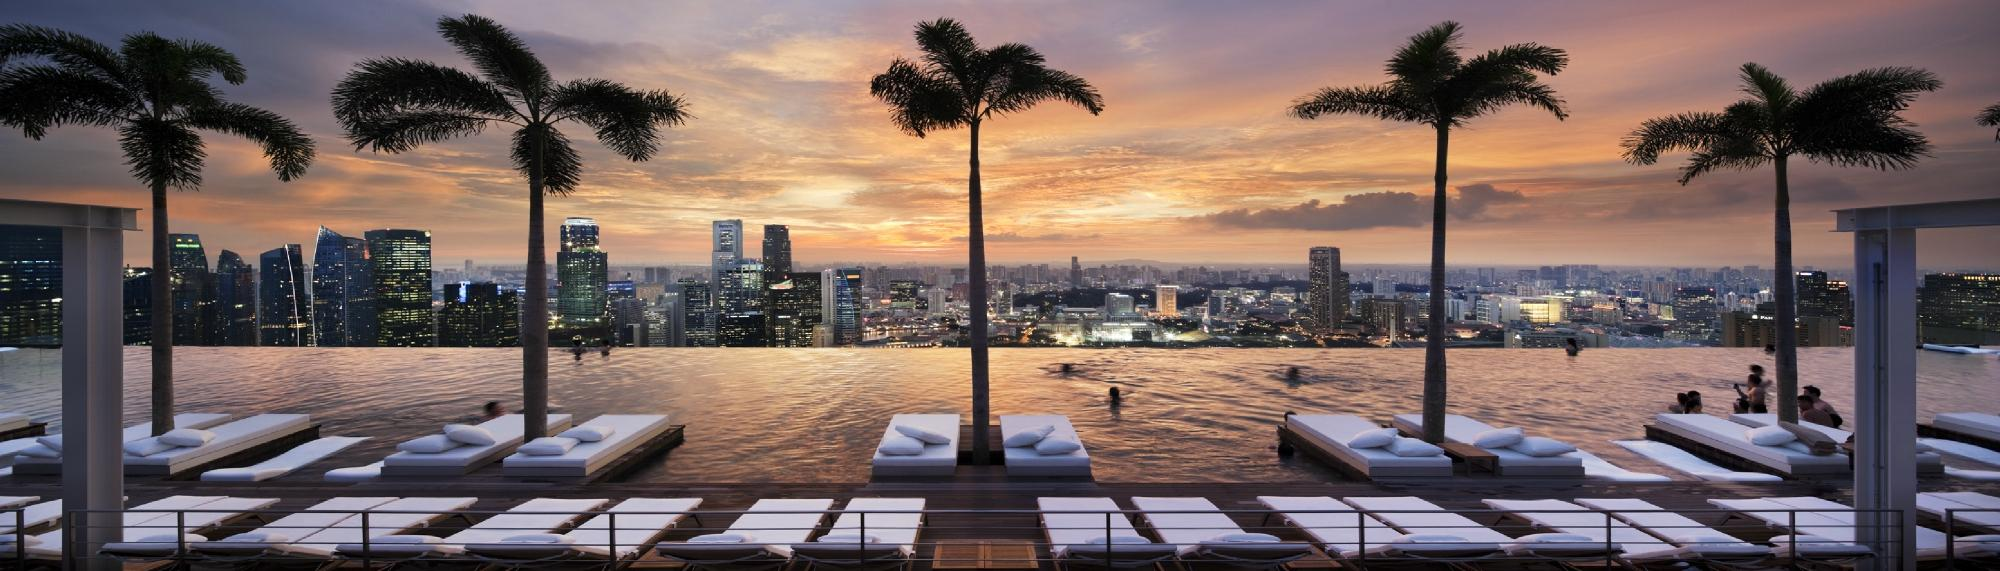 Pool Inspiration - Marina Bay Sands